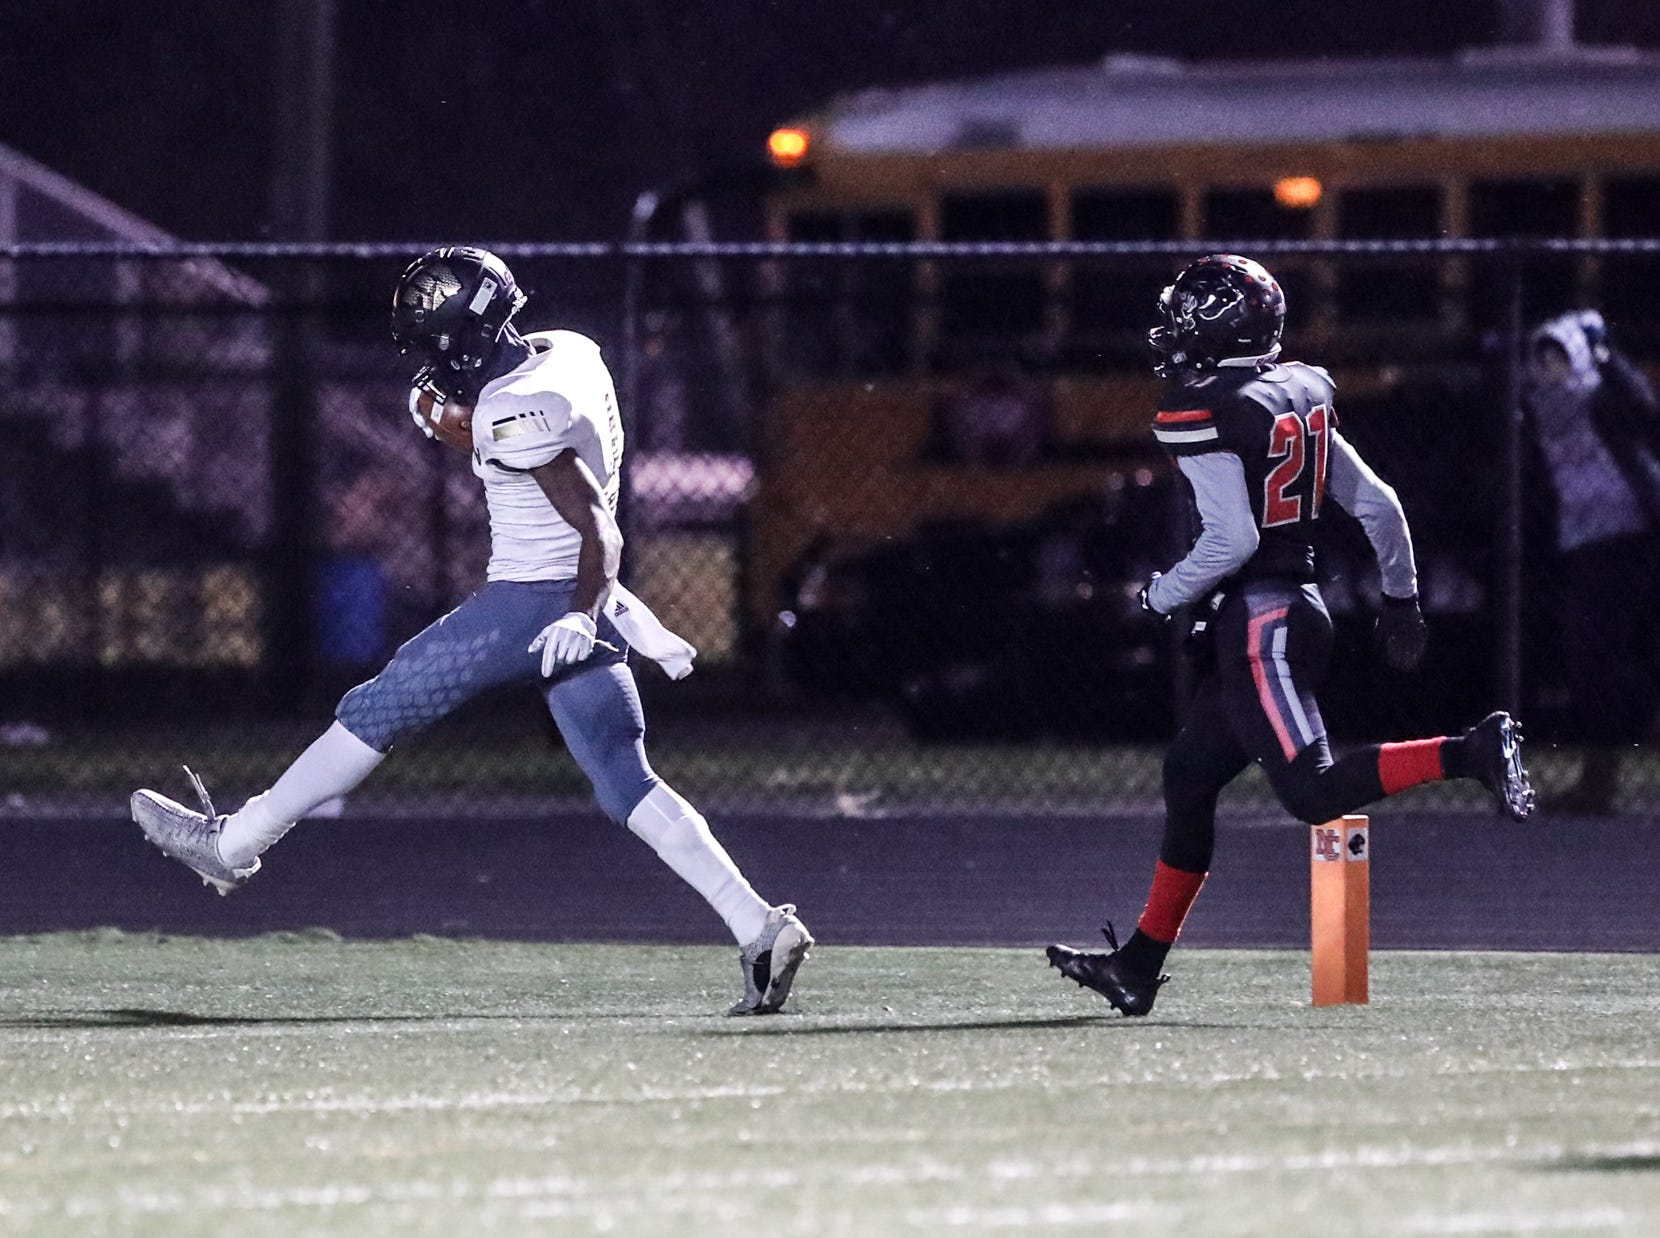 Warren Central High School Warrior's wide receiver David Bell (4), outruns North Central High School Panther's cornerback Theran Johnson (21), for an 80 yard touchdown during a regional finals game at North Central High School on Friday, Nov. 9, 2018.